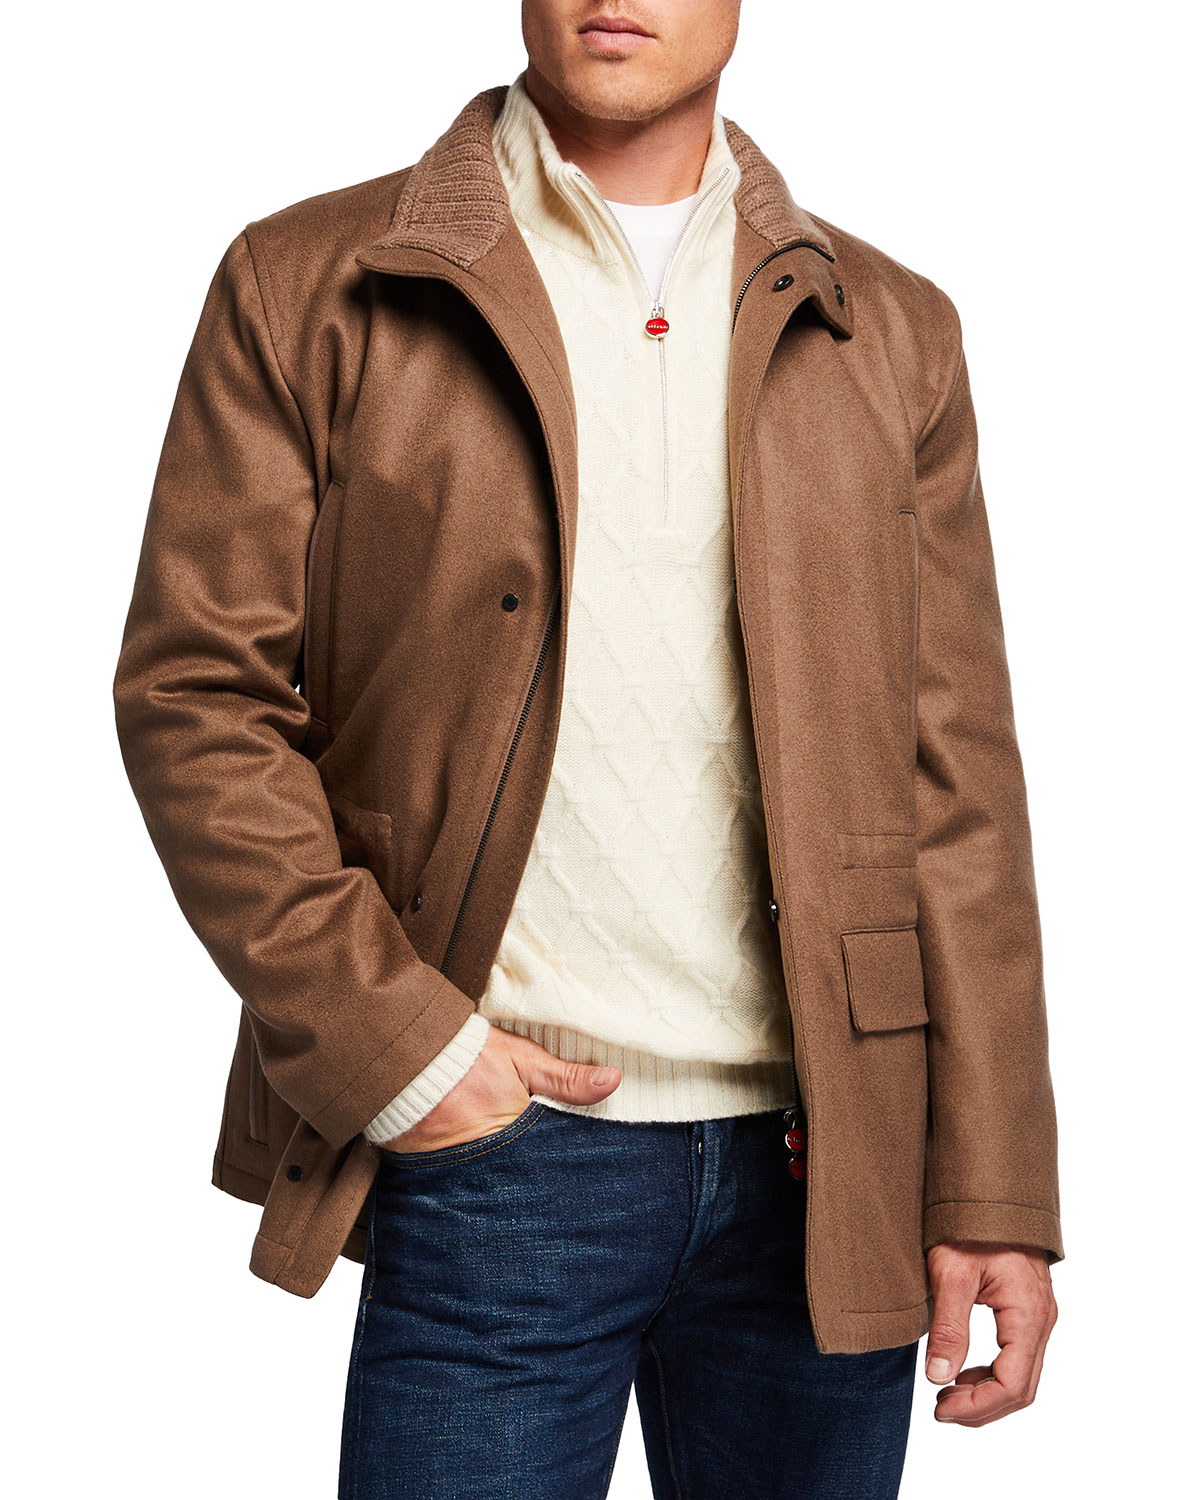 Kiton Men's Cashmere Zip-Up Car Coat